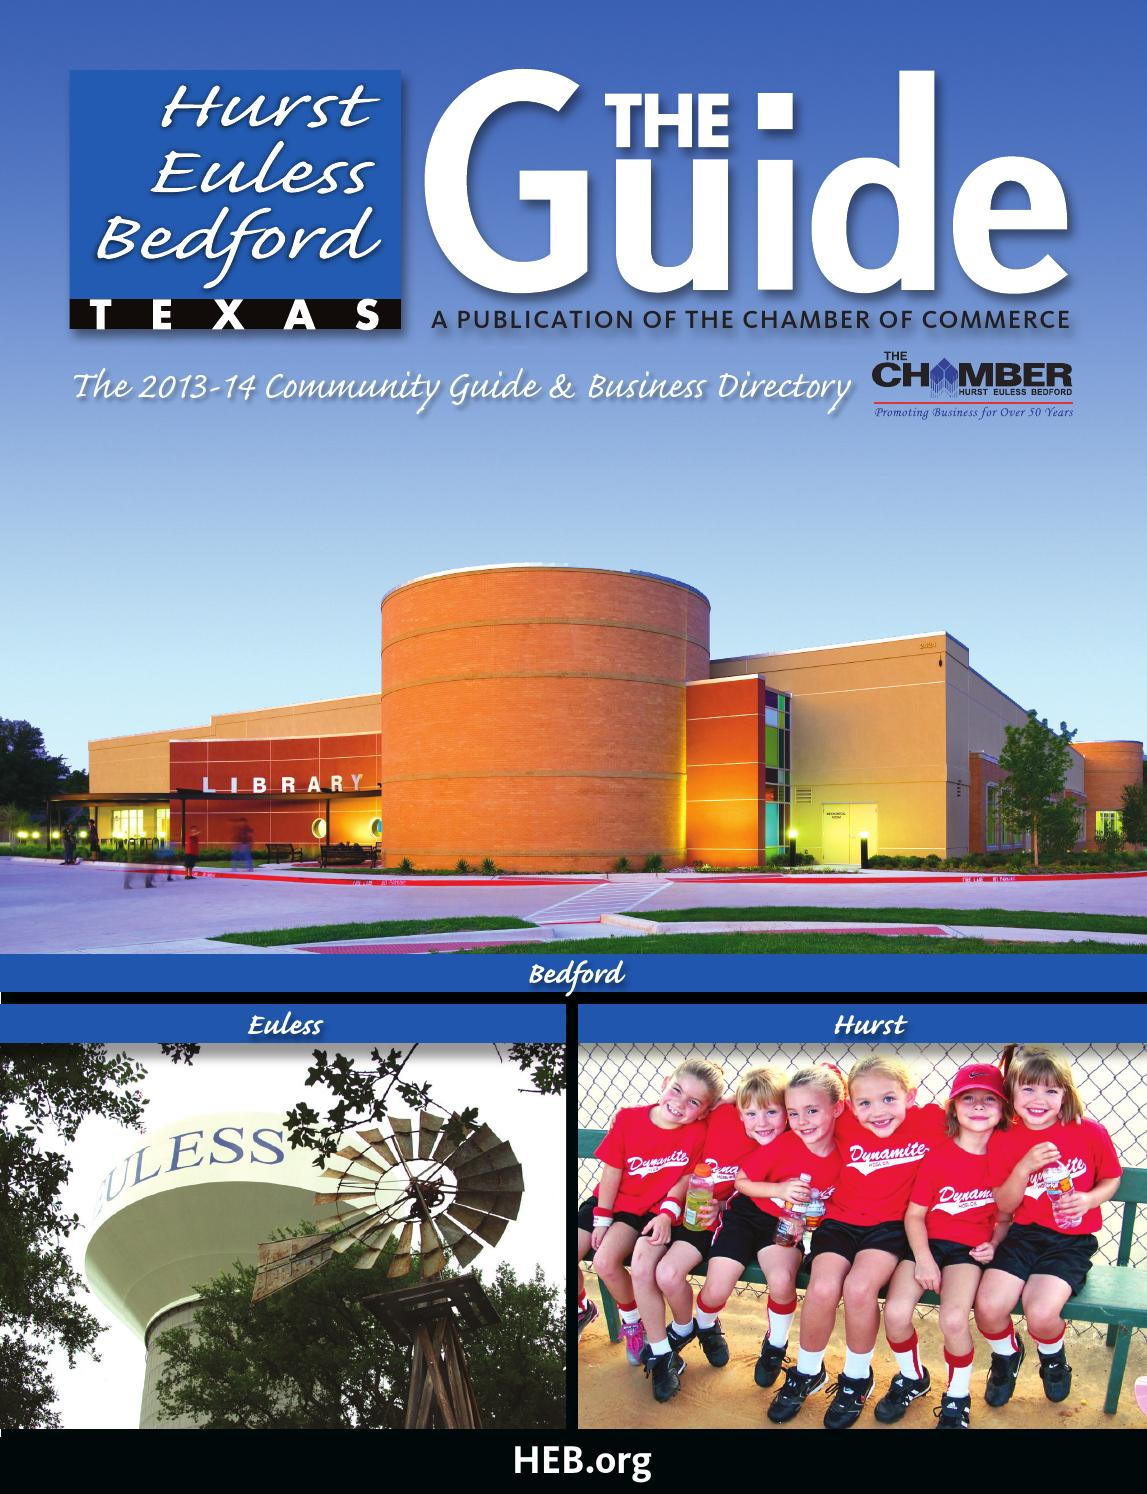 Hurst Euless Bedford TX The Guide by Chamber Marketing Partners, Inc. -  issuu